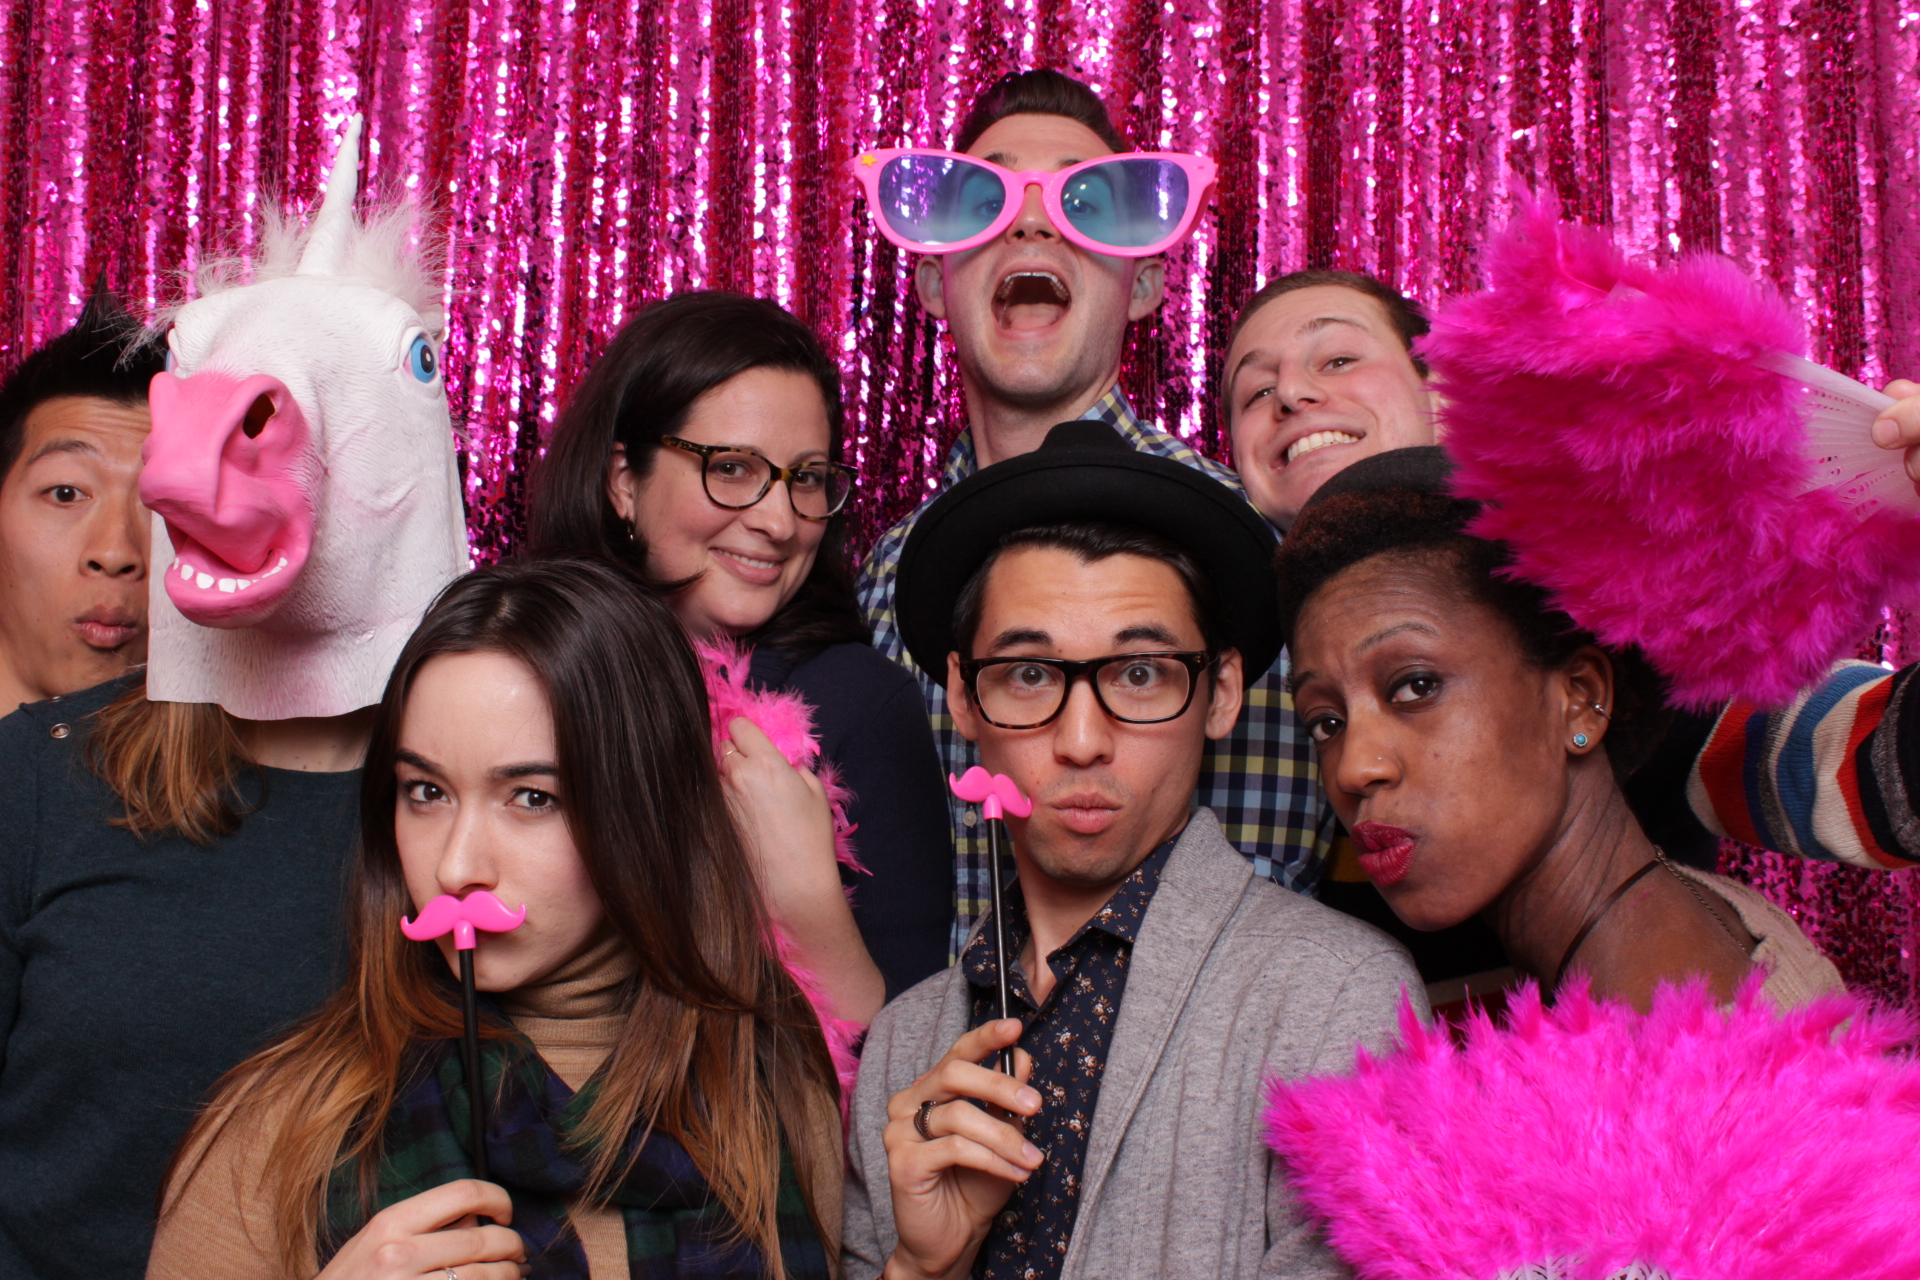 PREVIEW PARTY | HOT PINK PHOTO BOOTH